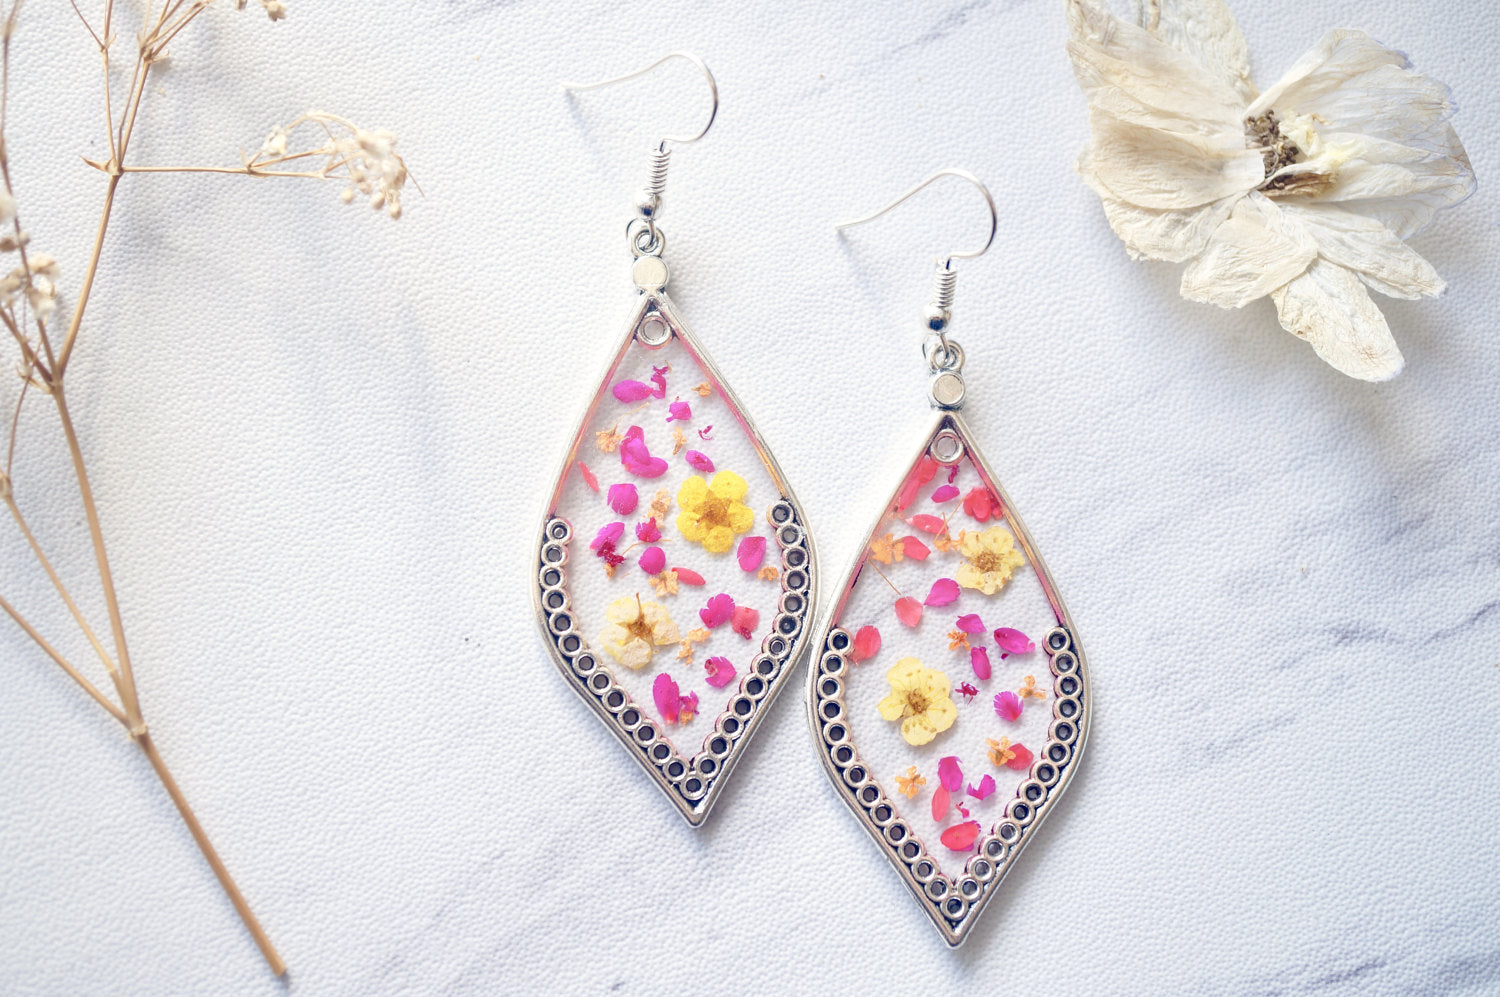 Real Pressed Flowers and Resin Earrings in Red Orange Pink Yellow